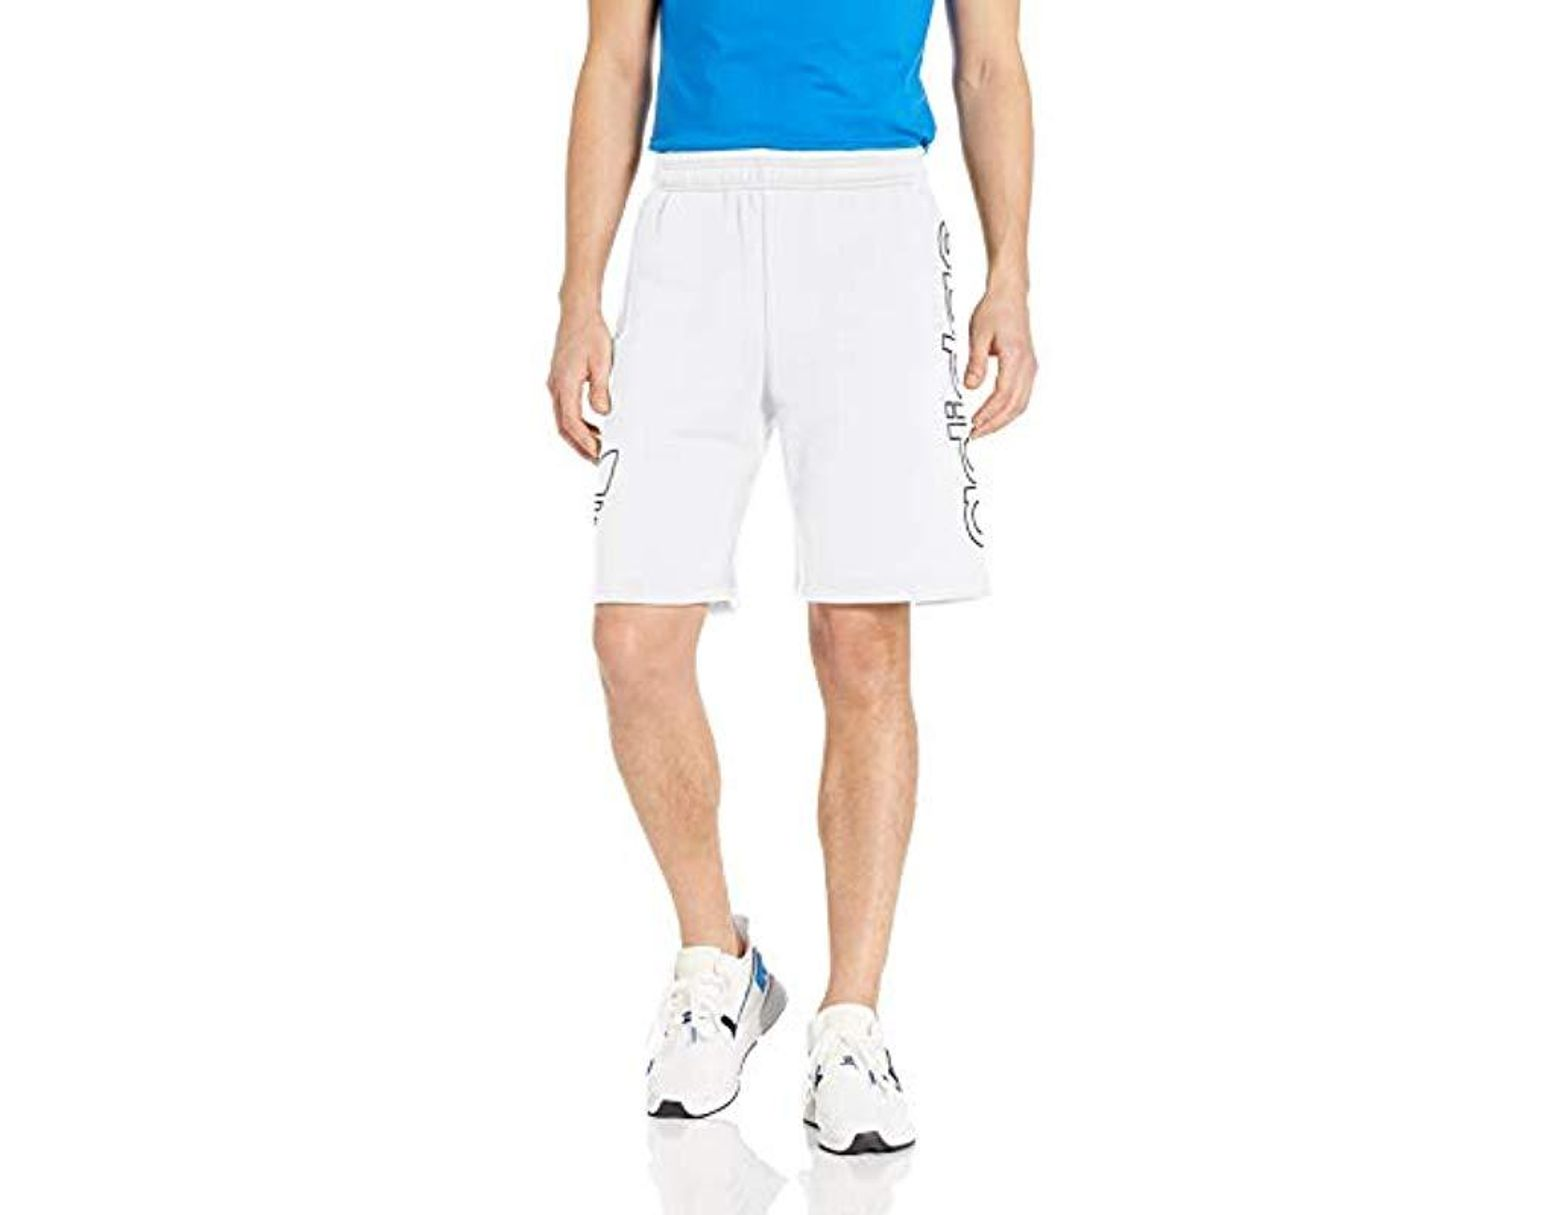 ca2e99dcb0ea9 adidas Originals French Terry Outline Shorts in White for Men - Lyst